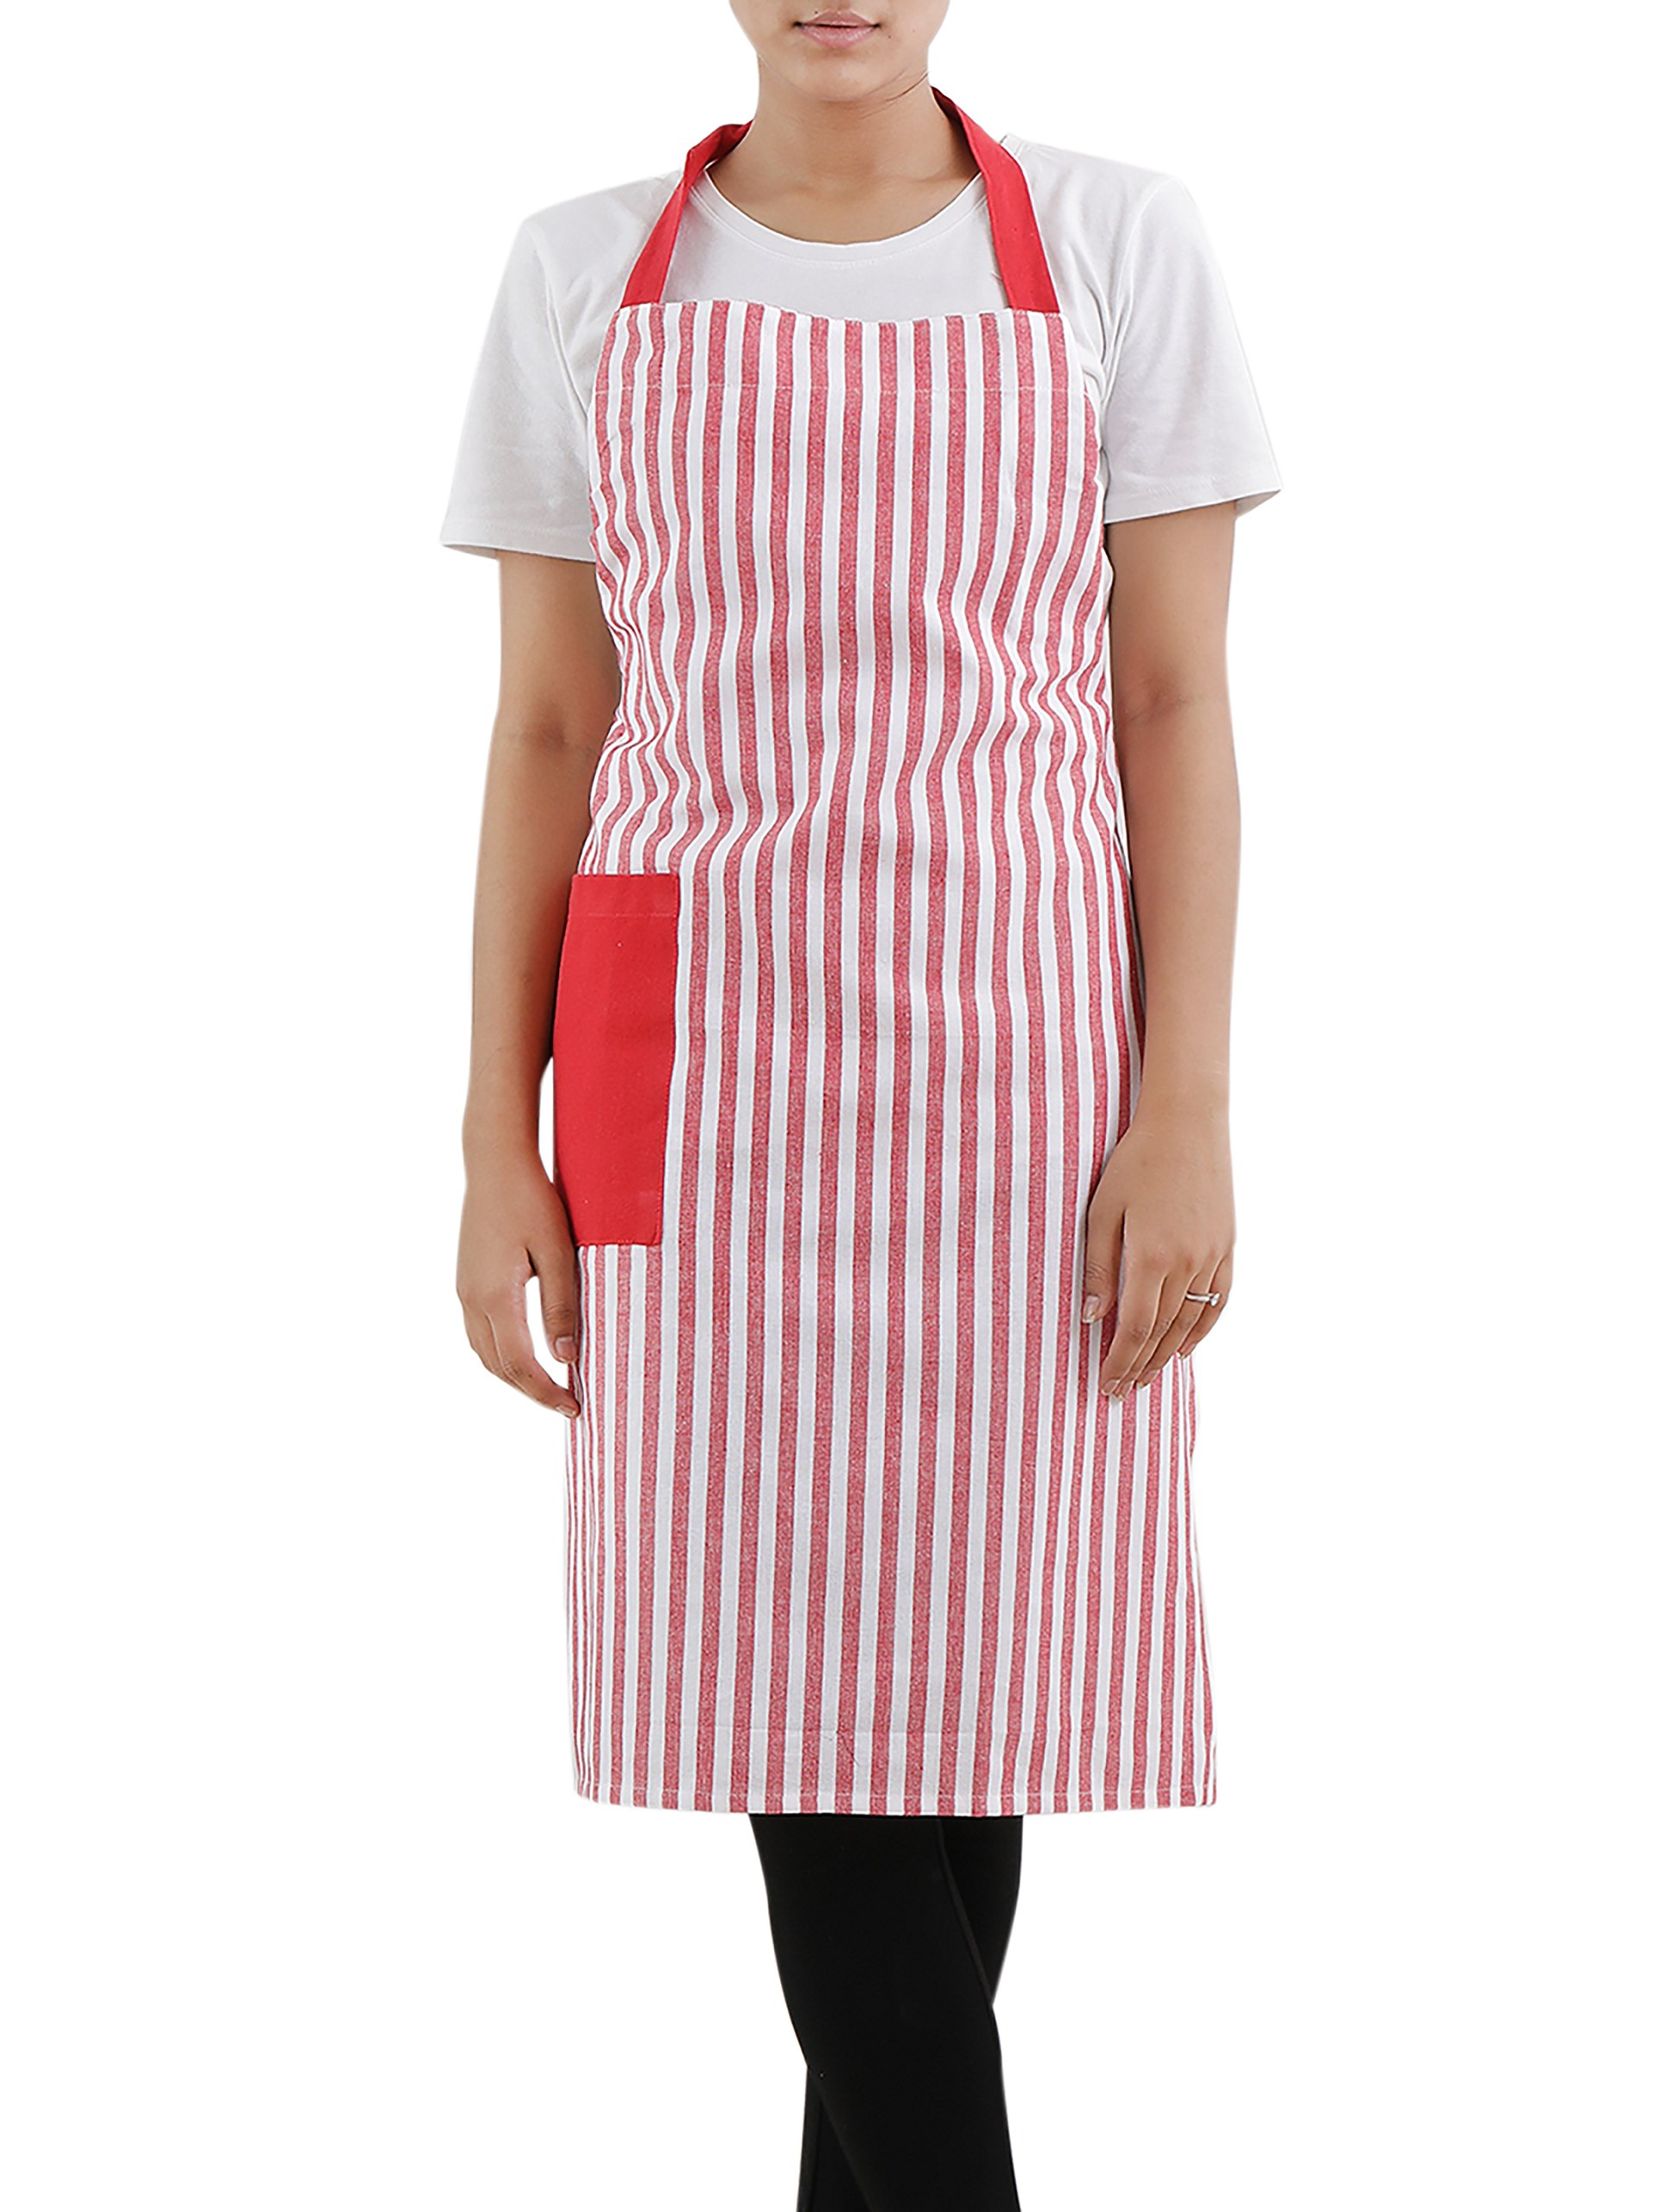 Cotton Bib Apron (27.5 x 33.5 Inches), Red & White Stripe - With adjusting neck strap and side pocket